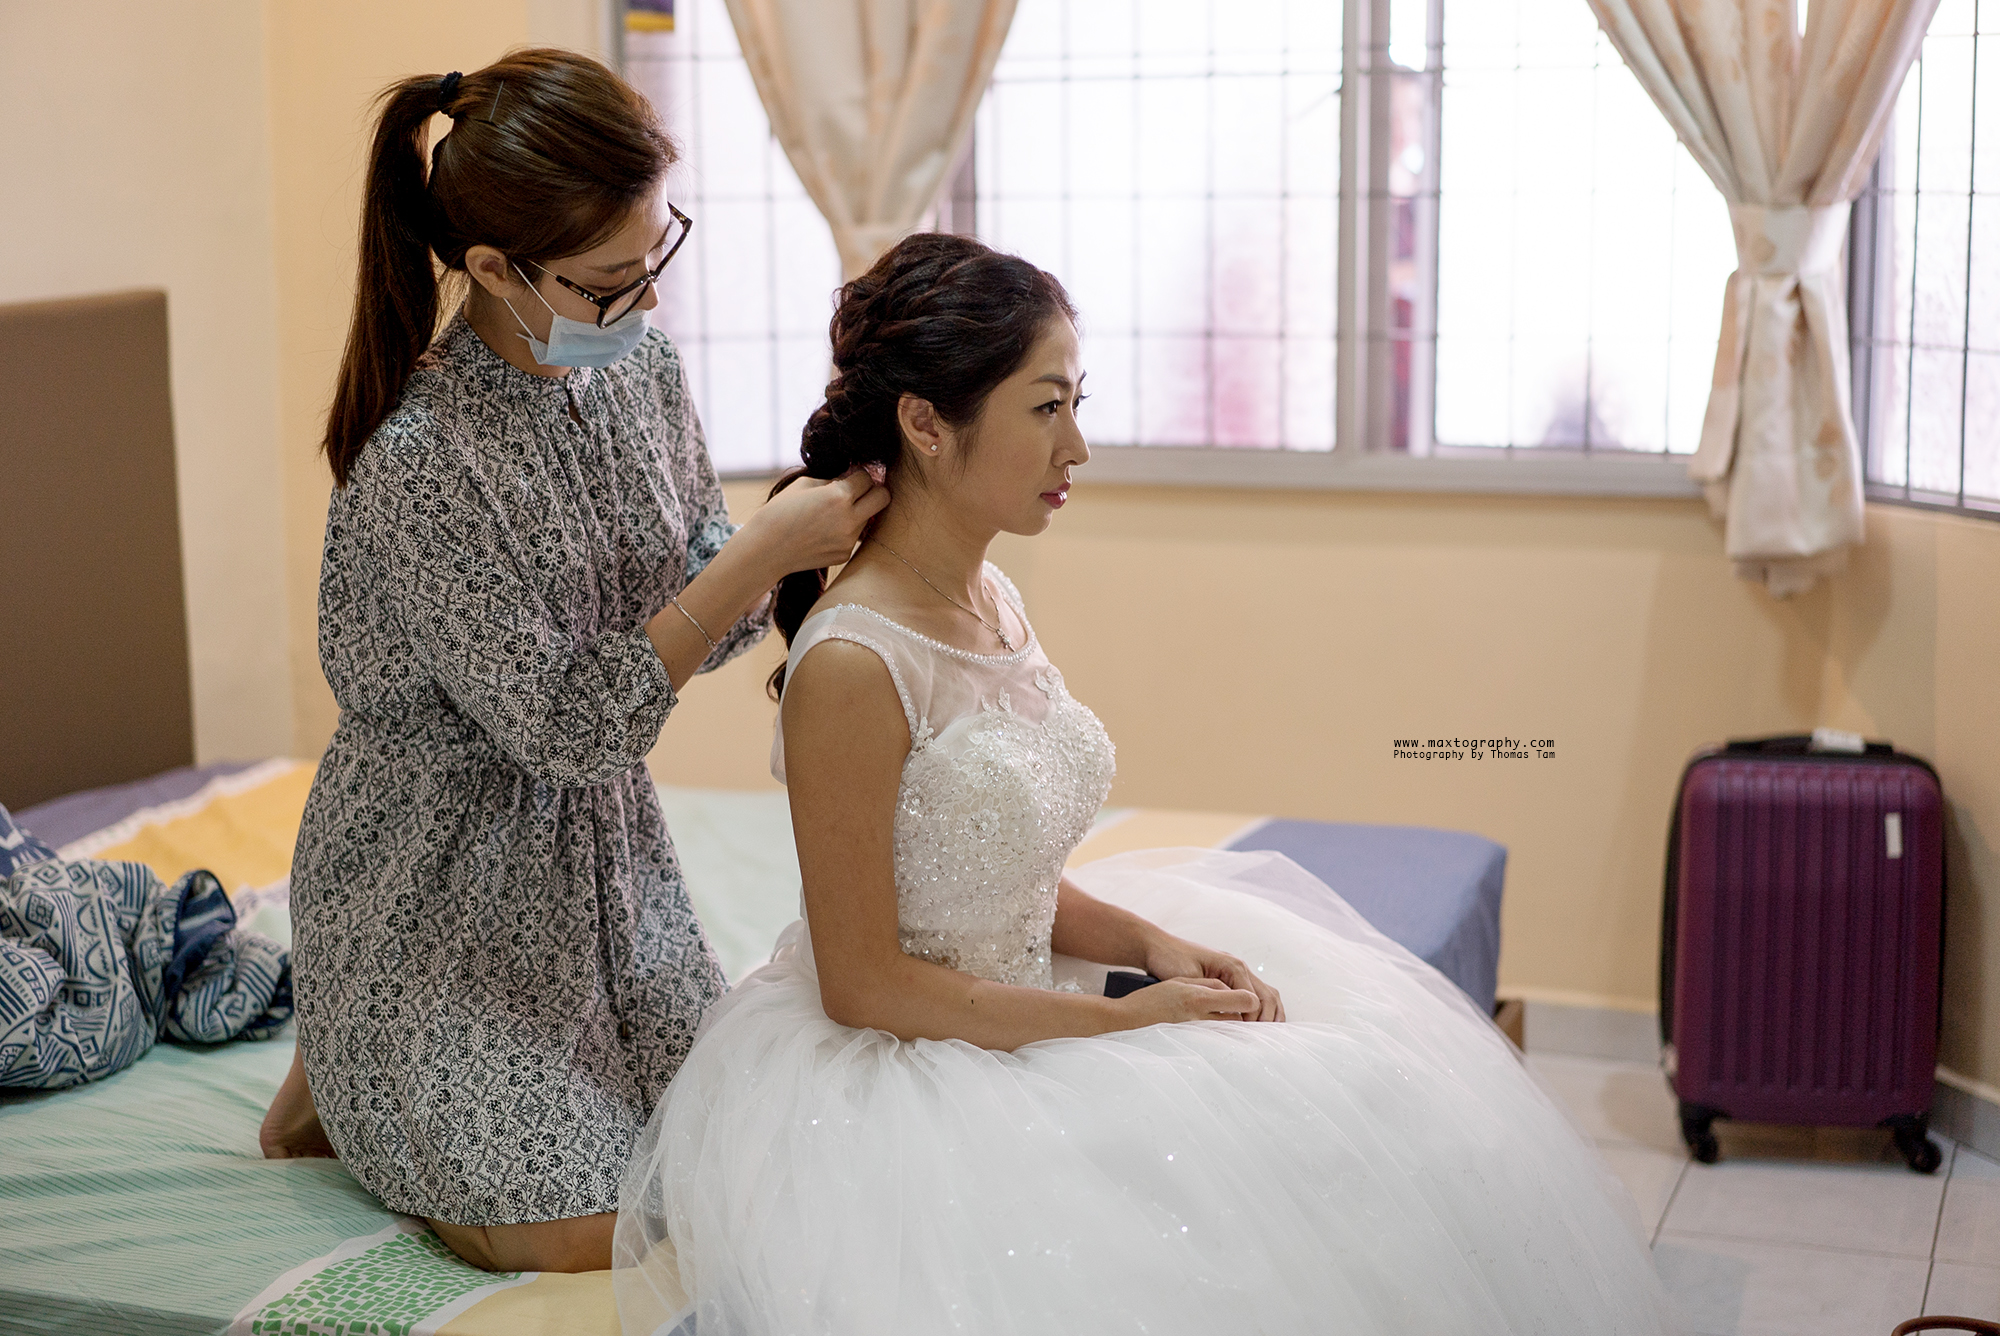 make up artist tiding bride hair